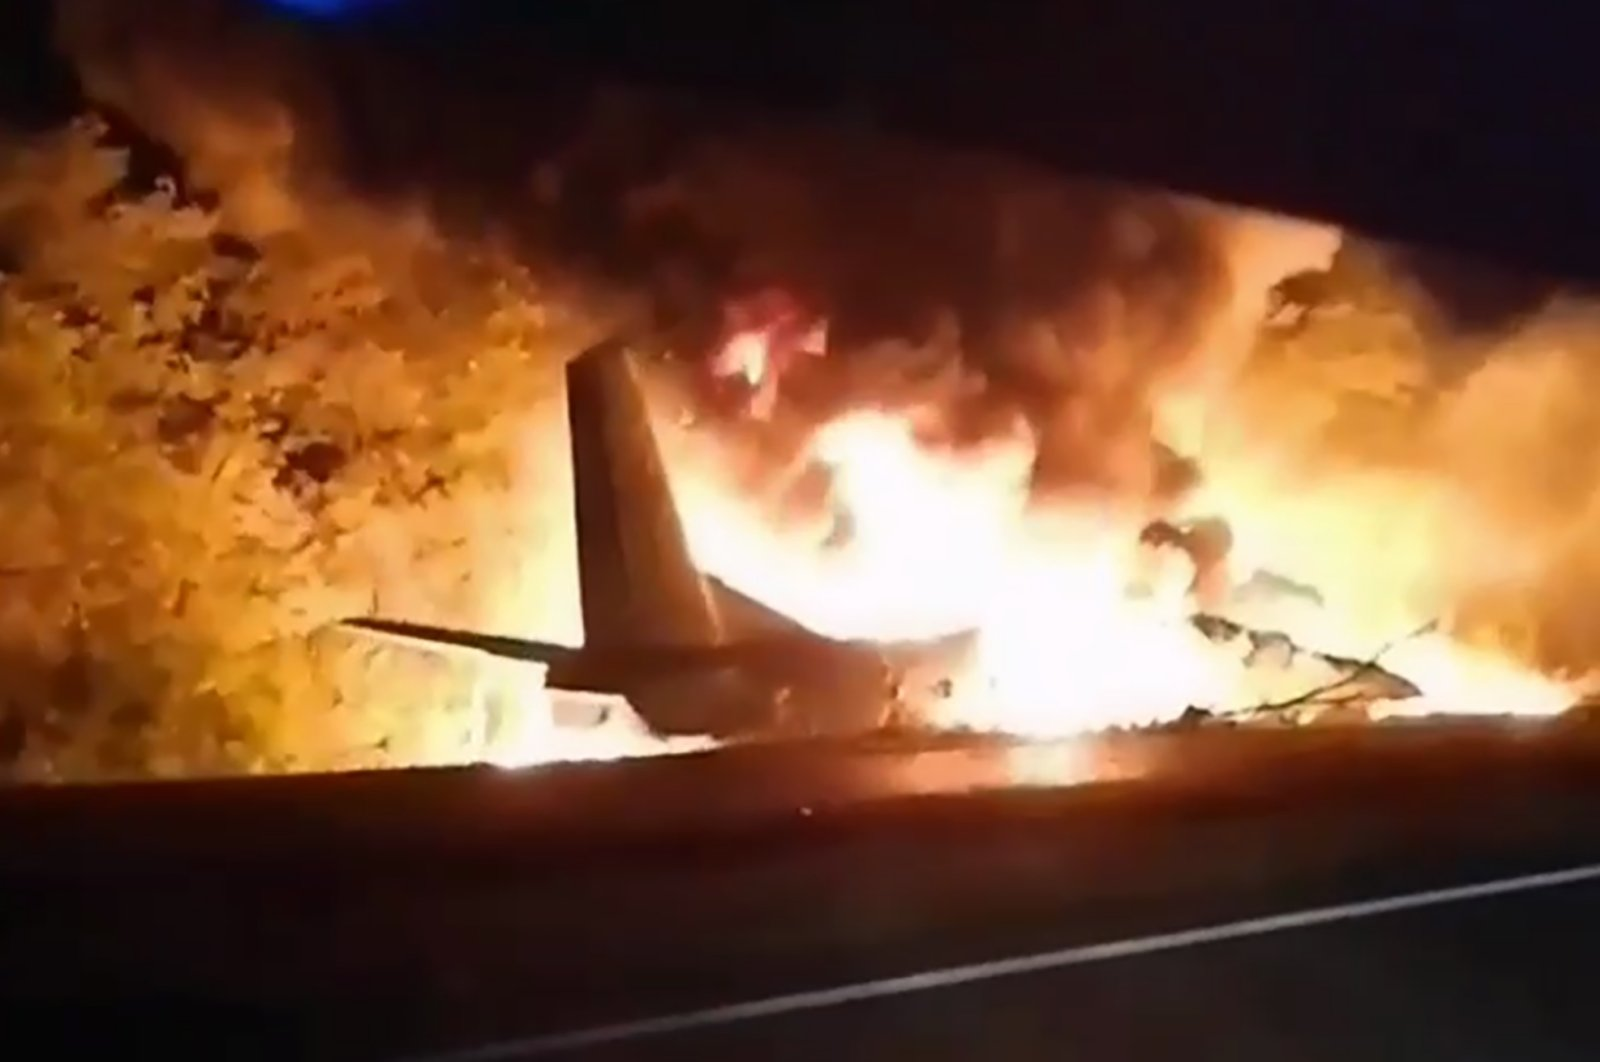 In this TV grab released by Ukraine's Emergency Situation Ministry, an AN-26 military plane bursts into flames after it crashed in the town of Chuguyiv close to Kharkiv, Ukraine, late Sept. 25, 2020. (Emergency Situation Ministry Photo via AP)